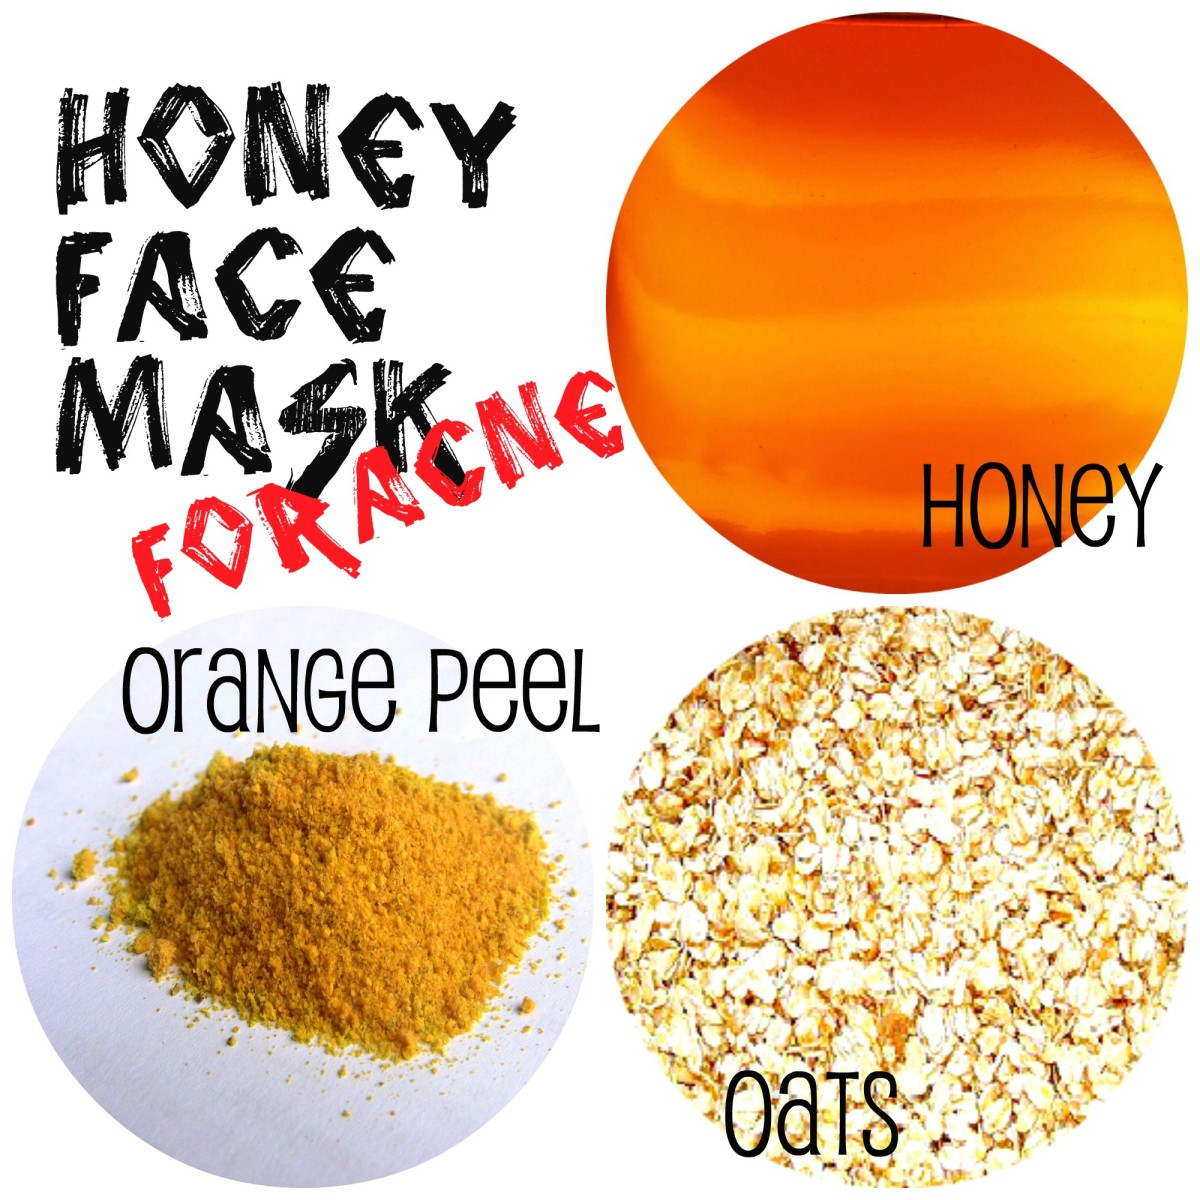 Honey's intense antibacterial action can cure existing acne and prevent any further unwelcome pimples.